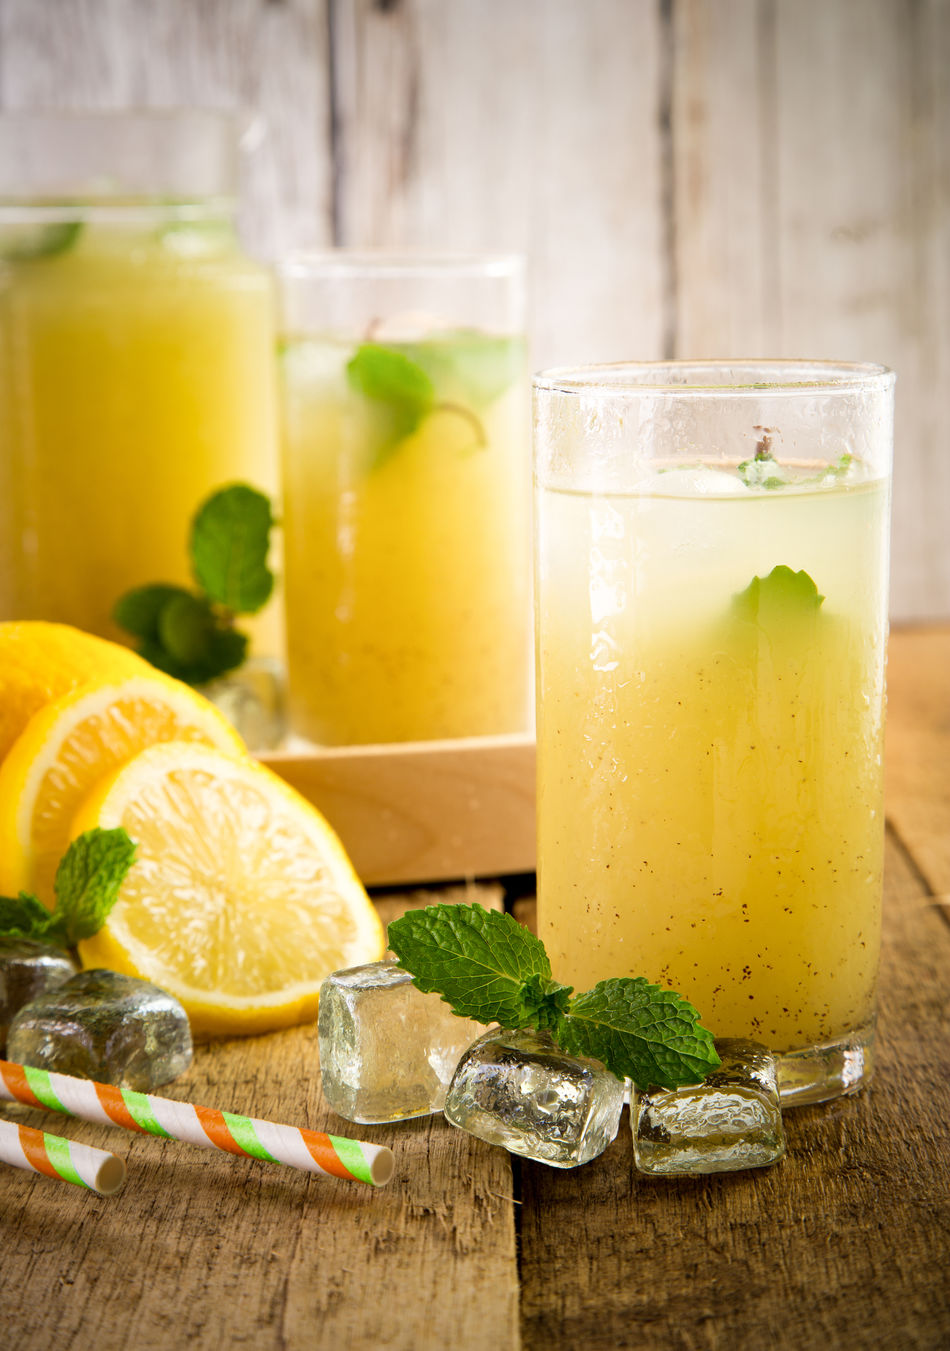 Beautiful stock photos of obst, Citrus Fruit, Drink, Drinking Glass, Drinking Straw